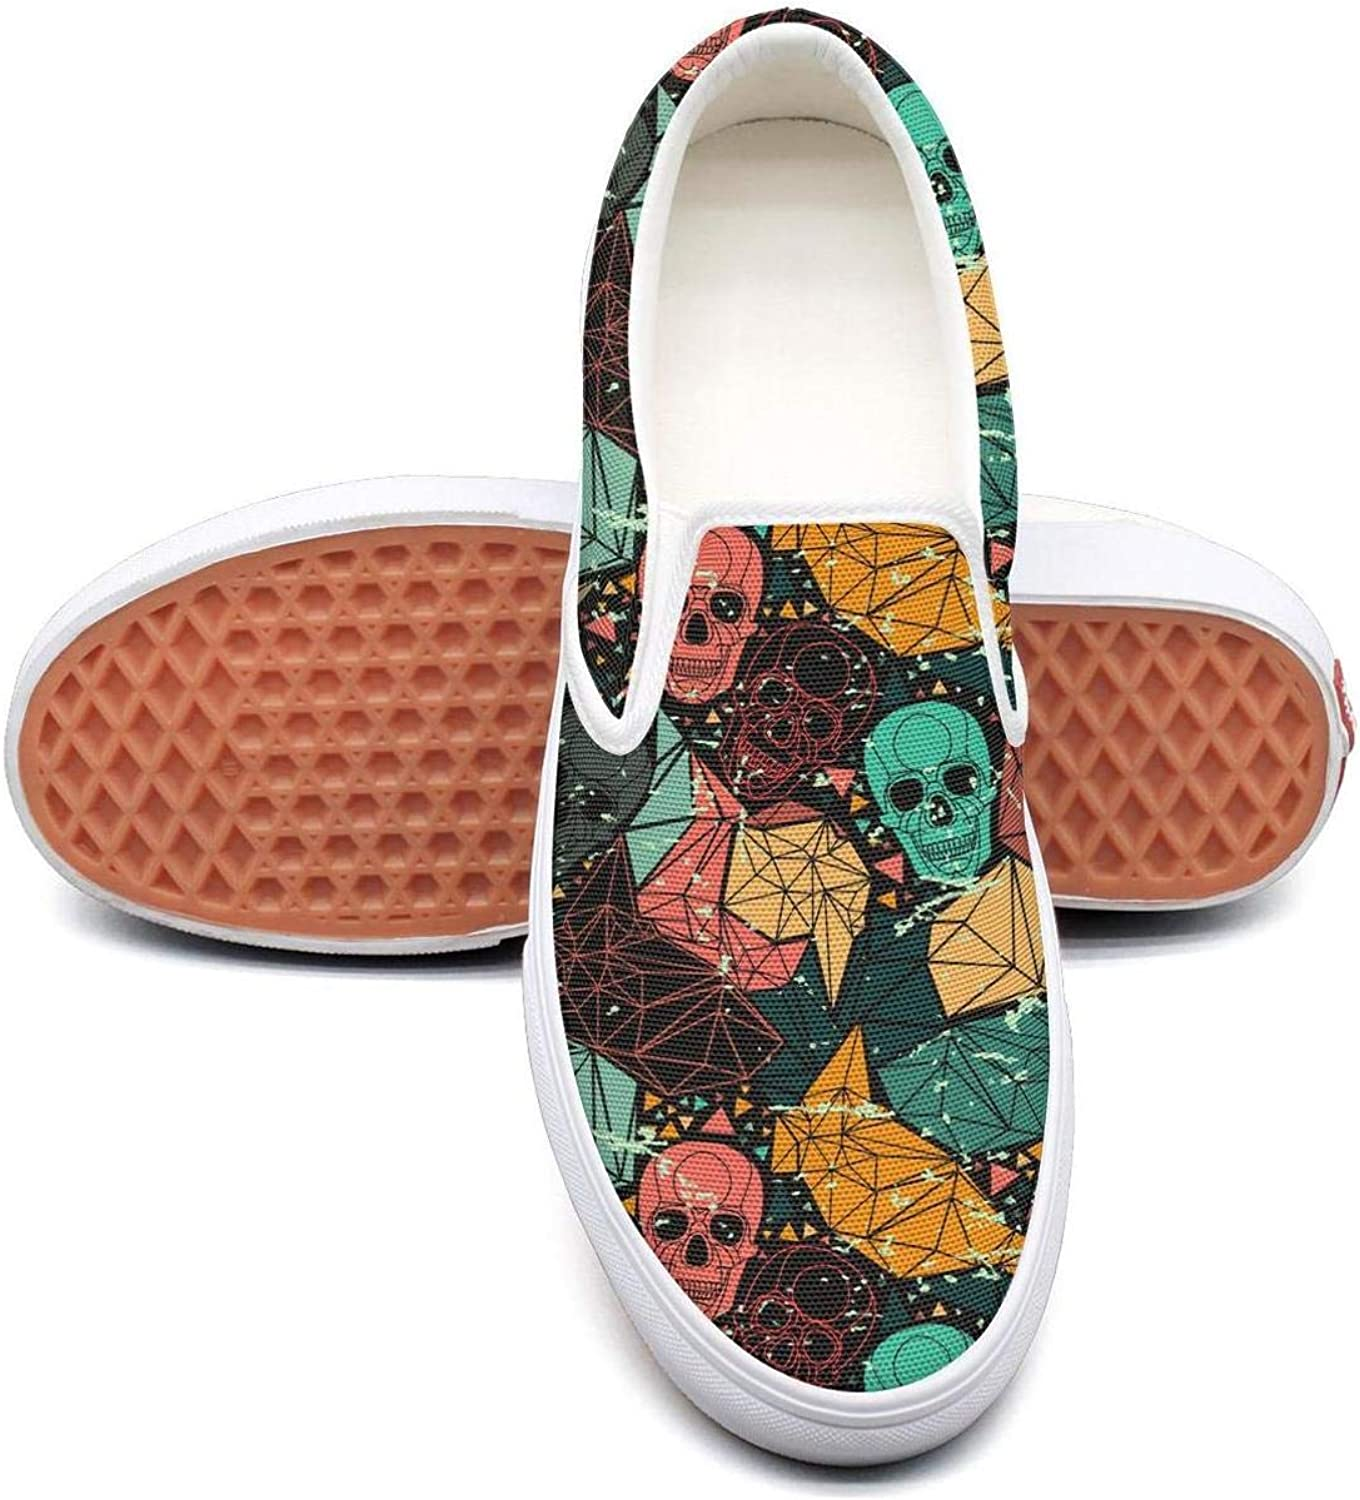 colorful Mexican Skull Party Slip On Rubber Sole Loafers Canvas shoes for Women Lightweight